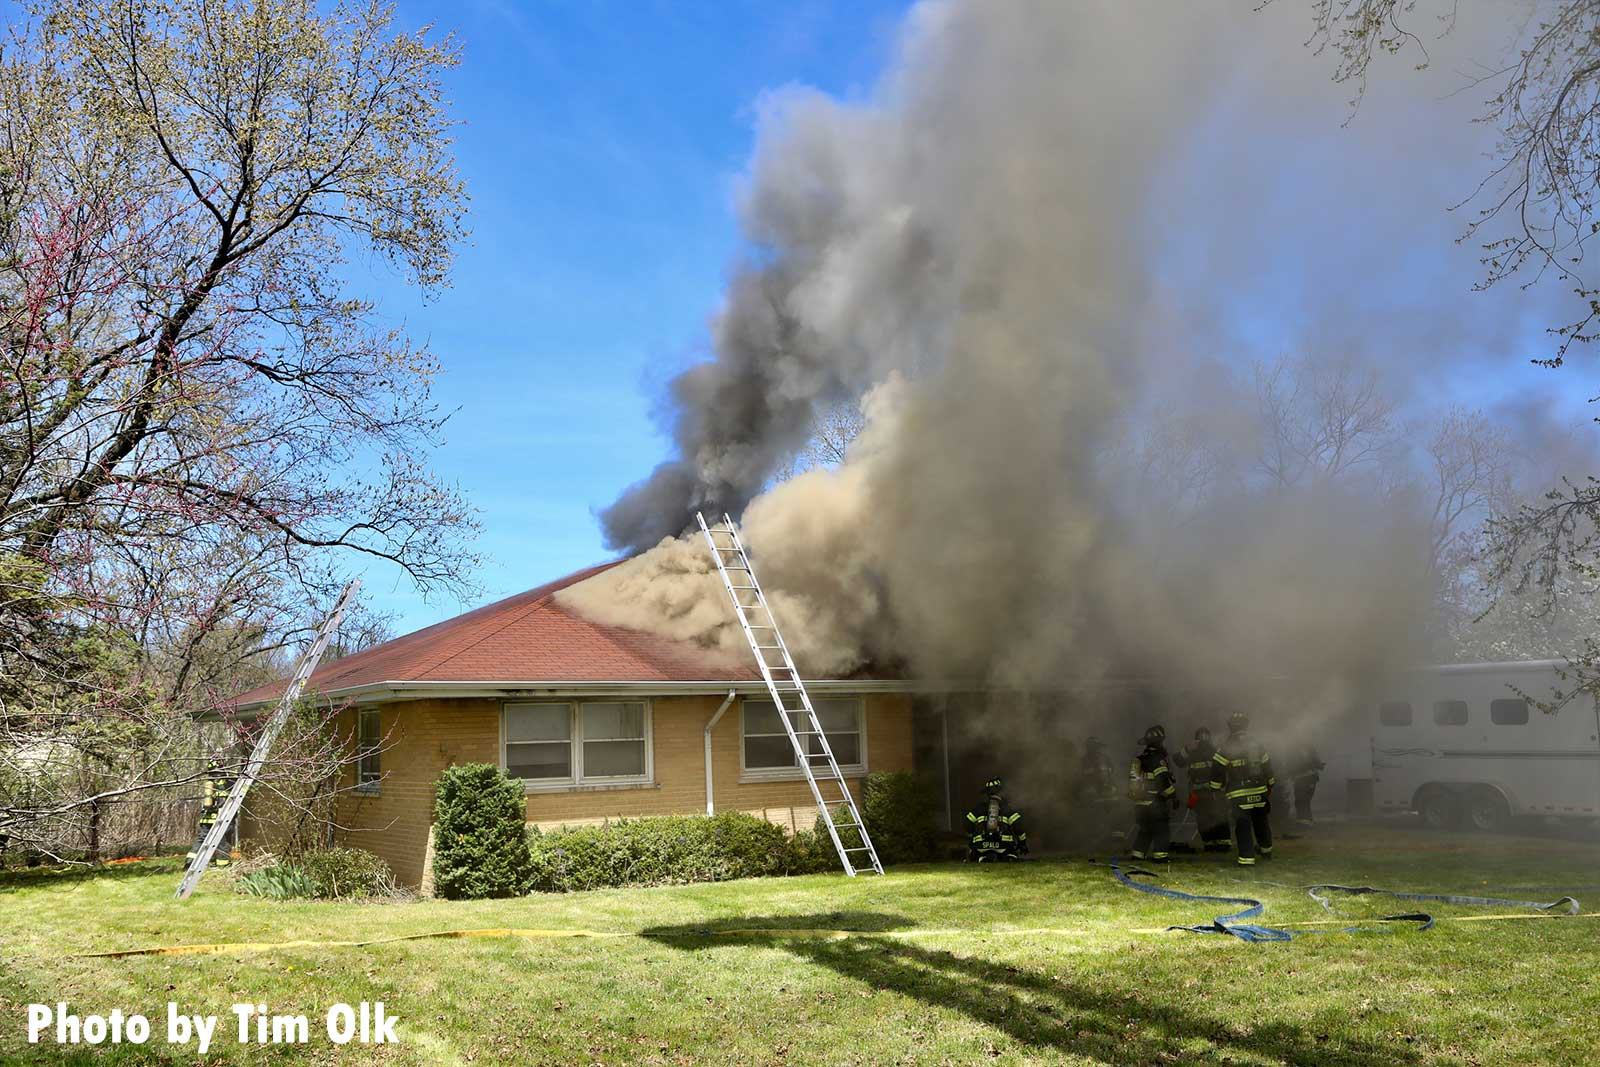 A ladder up to the roof of the vacant home with smoke showing